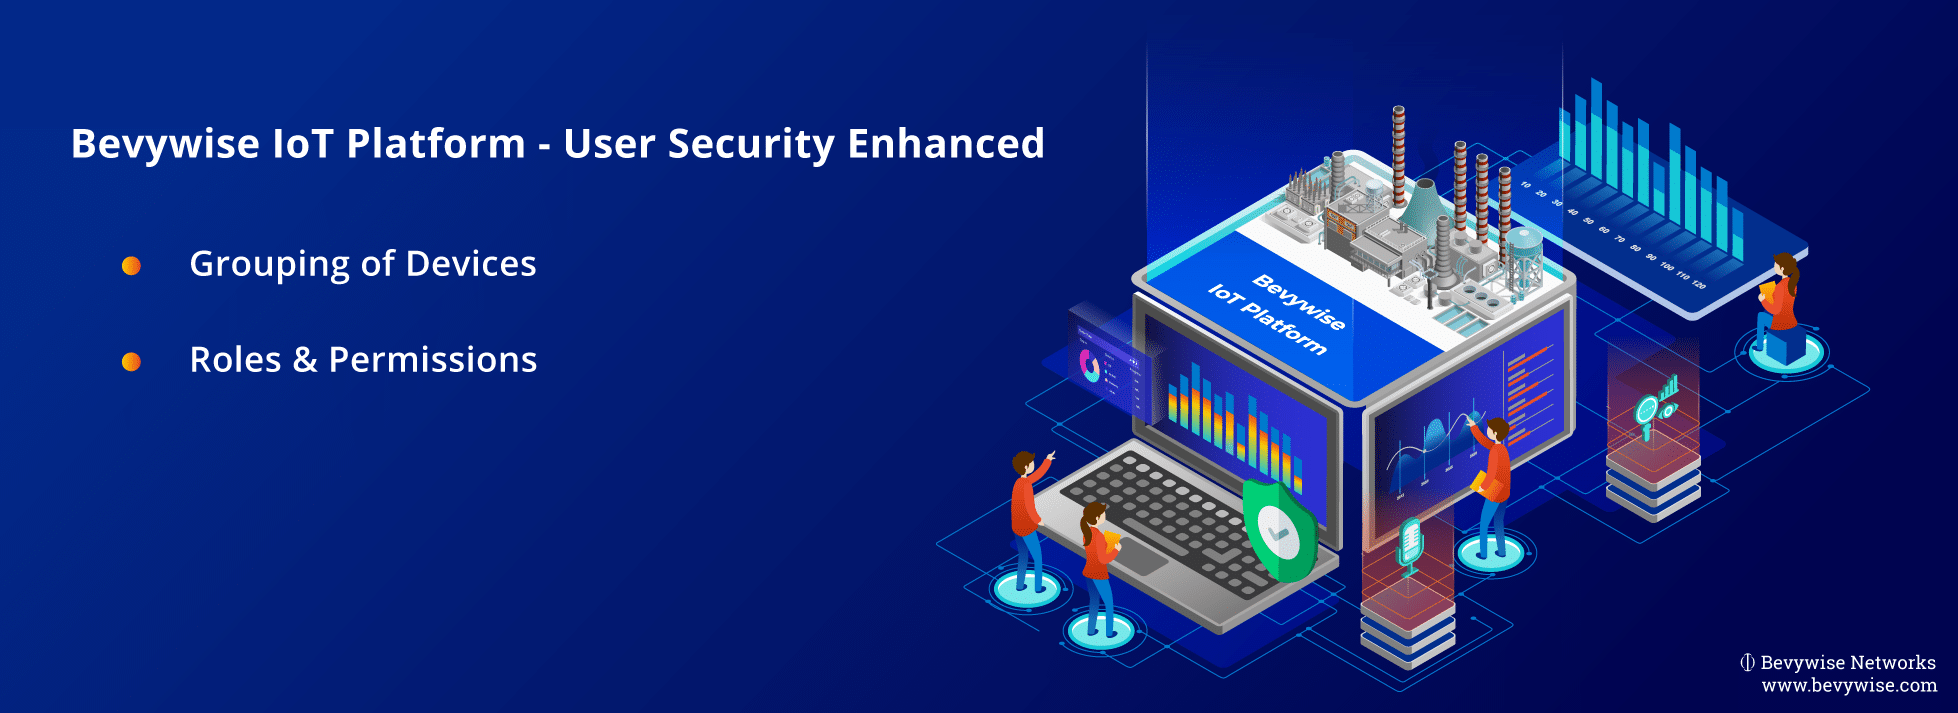 IoT platform enhanced with user security permissions